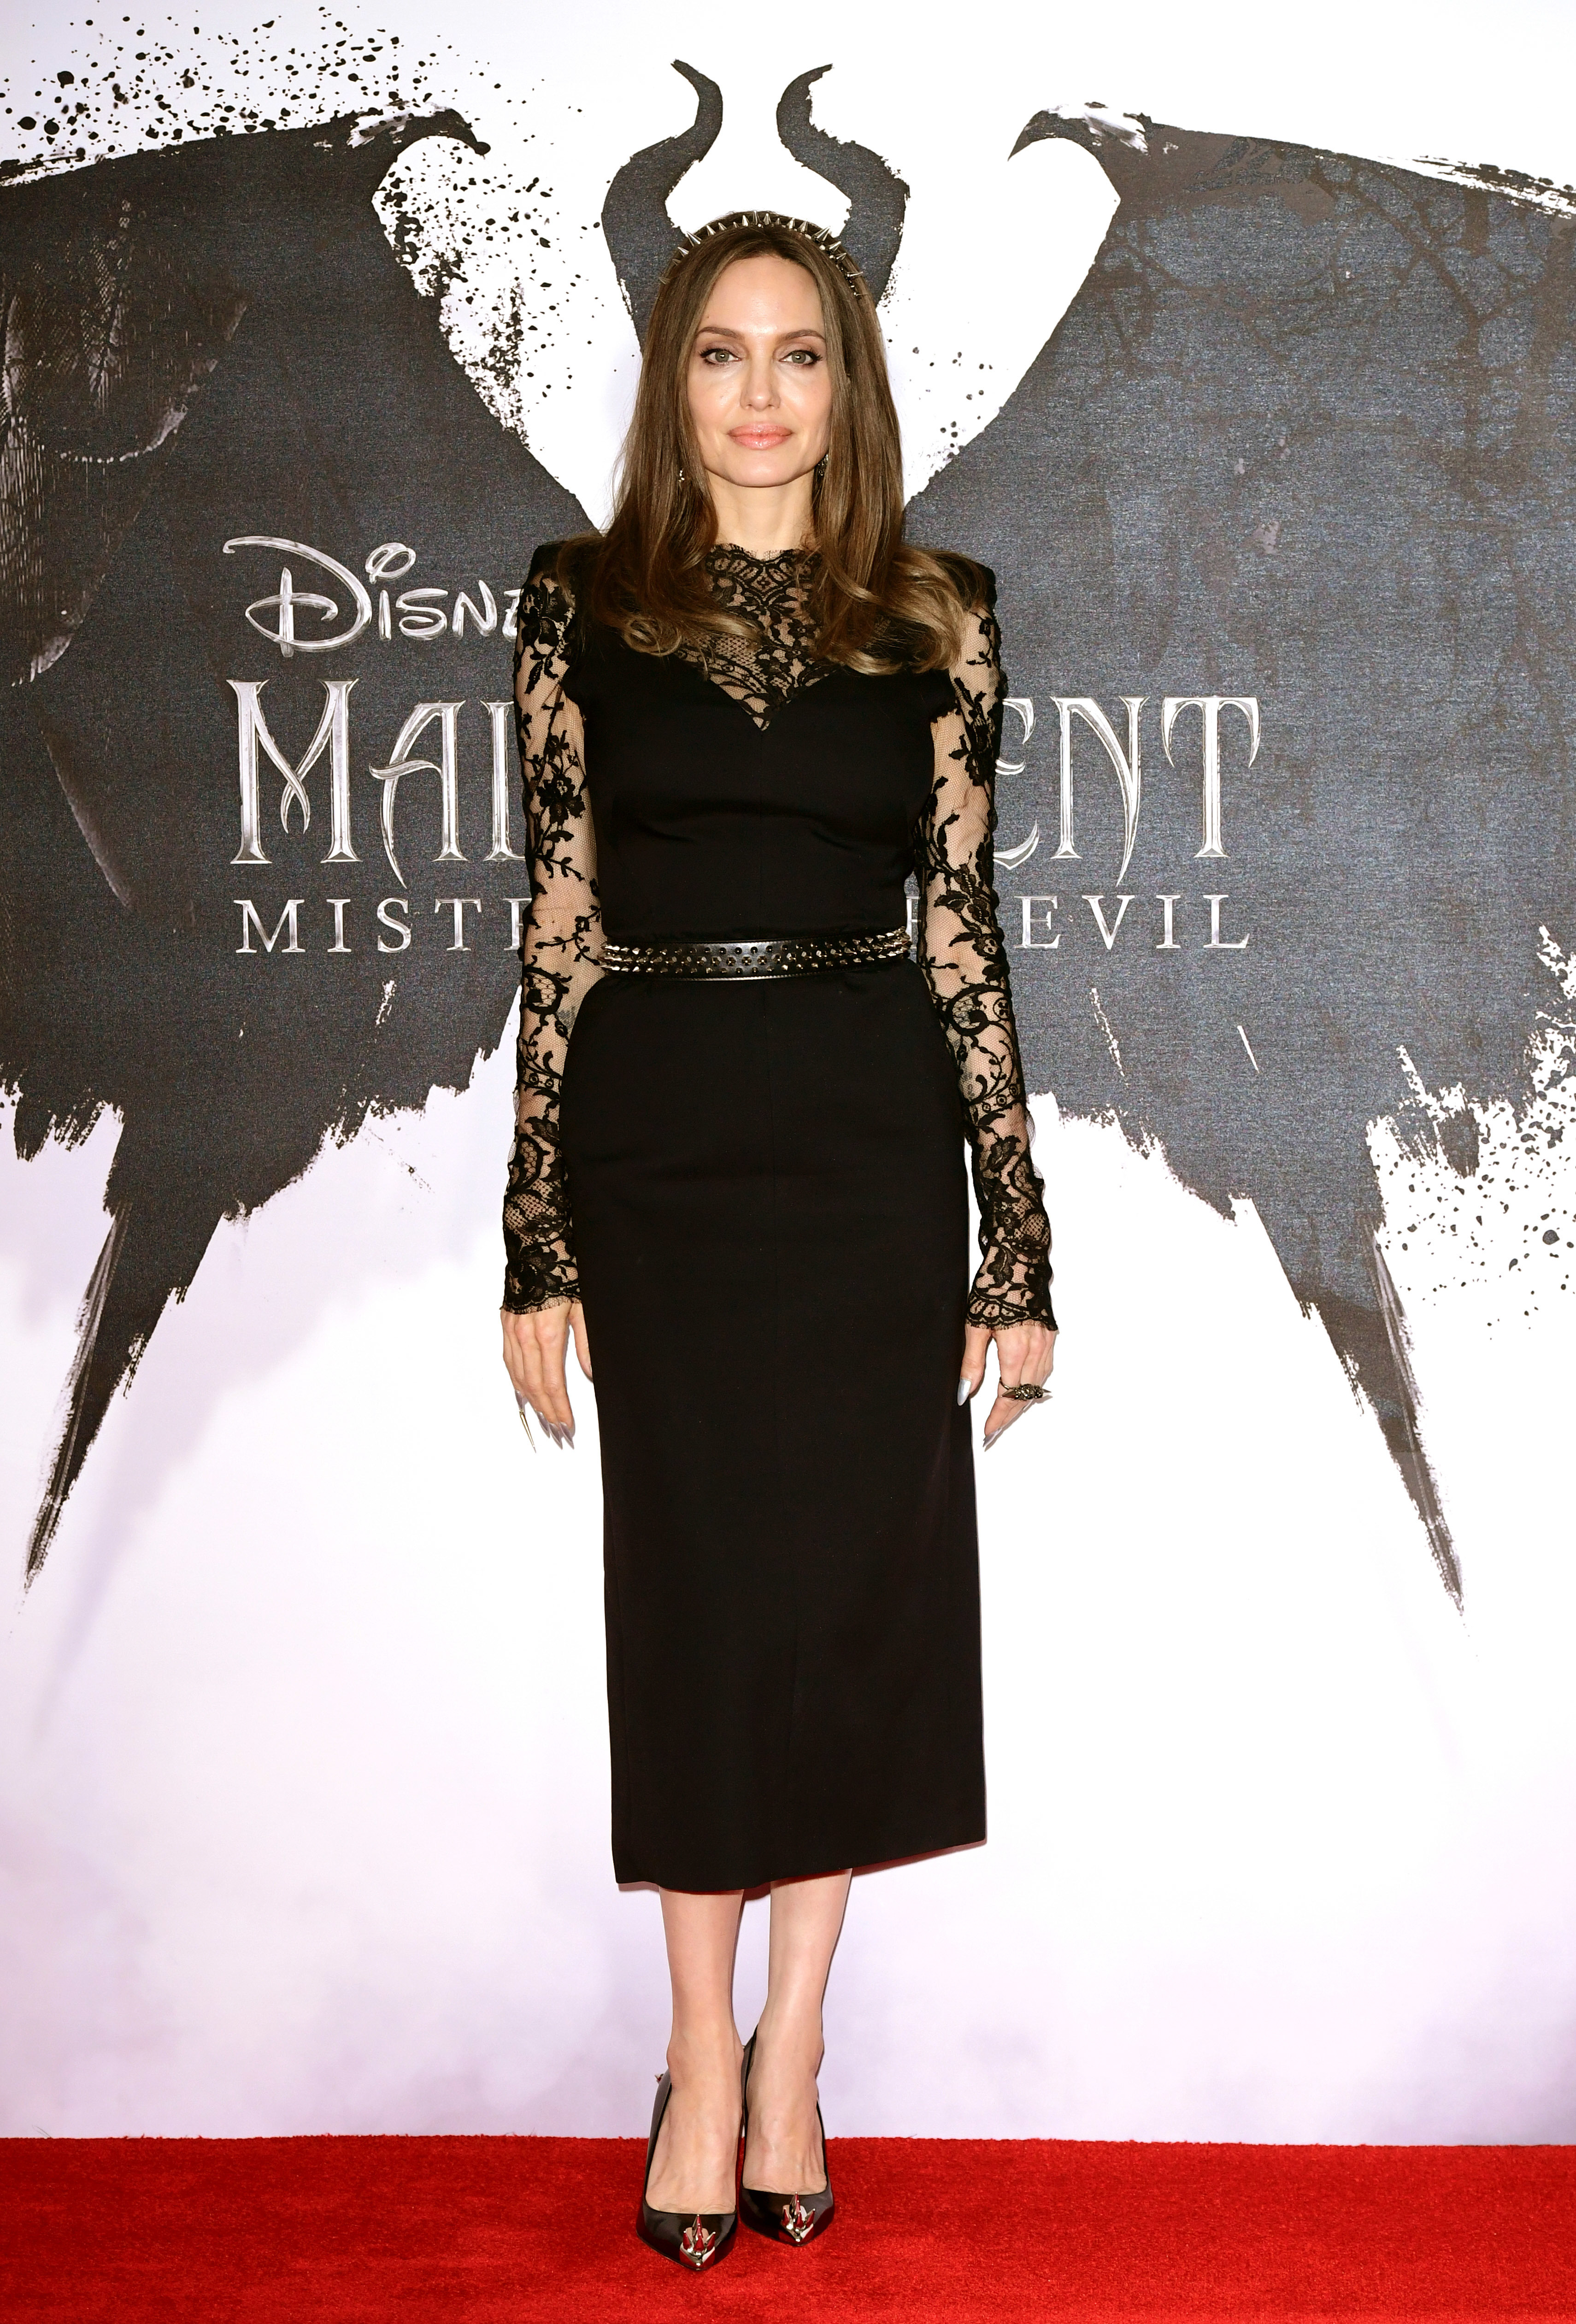 Angelina Jolie S Maleficent Mistress Of Evil Press Tour